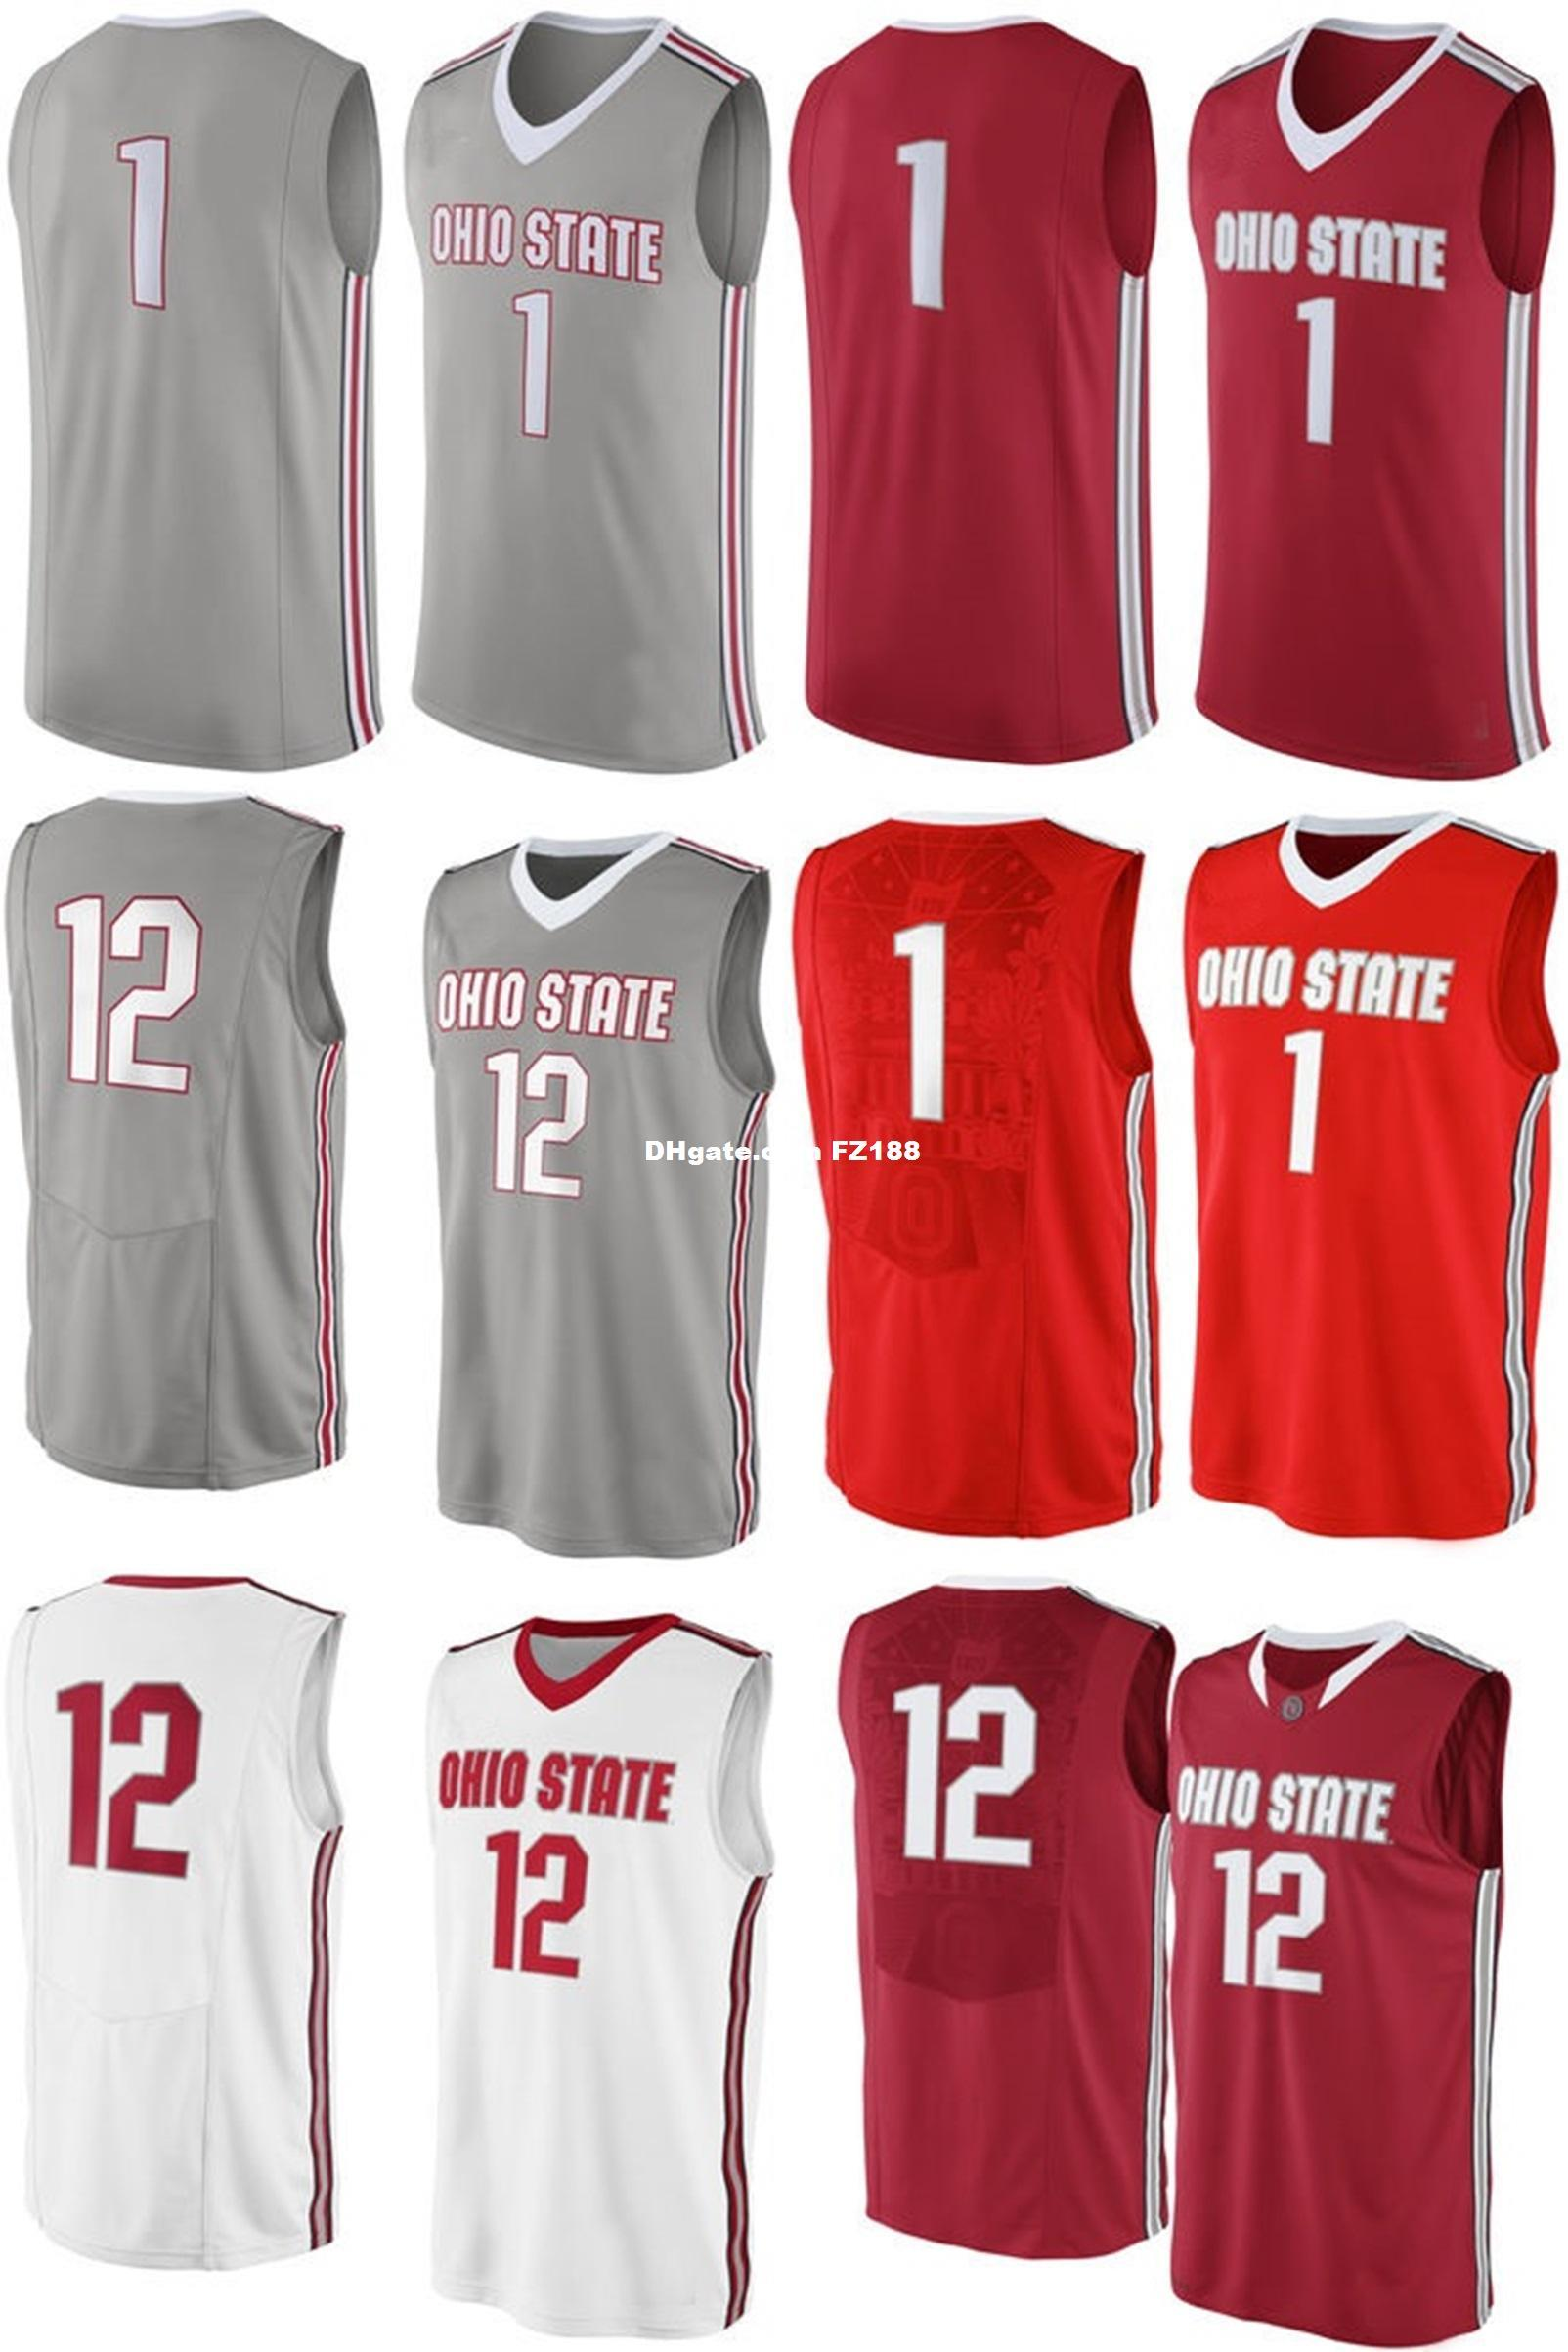 66a8032acb68 2019 Newest Arrival NCAA Ohio State Buckeyes Mens Womens Kids Basketball  Jersey Custom Any Name Any No. XS 6XL College Basketball Sport Jerseys From  ...